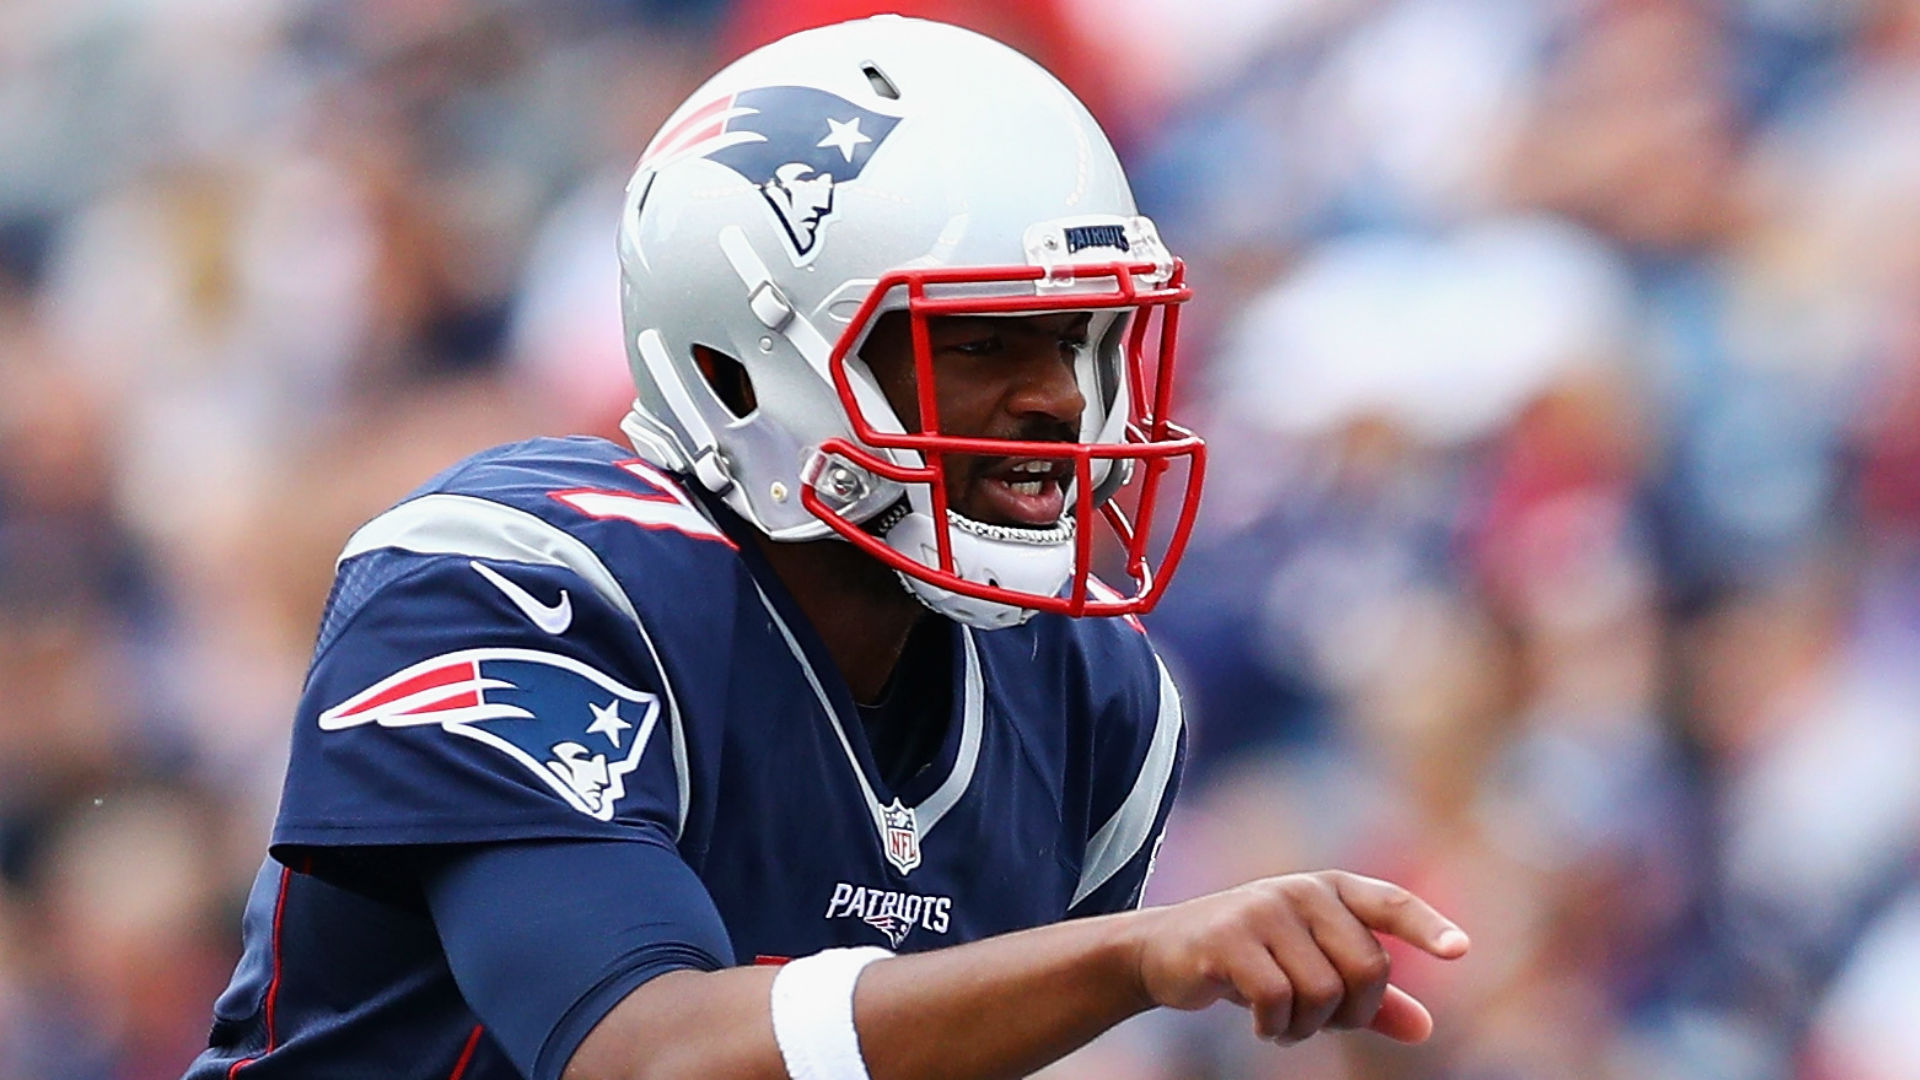 Patriots trade Jacoby Brissett to Indianapolis Colts, reports says